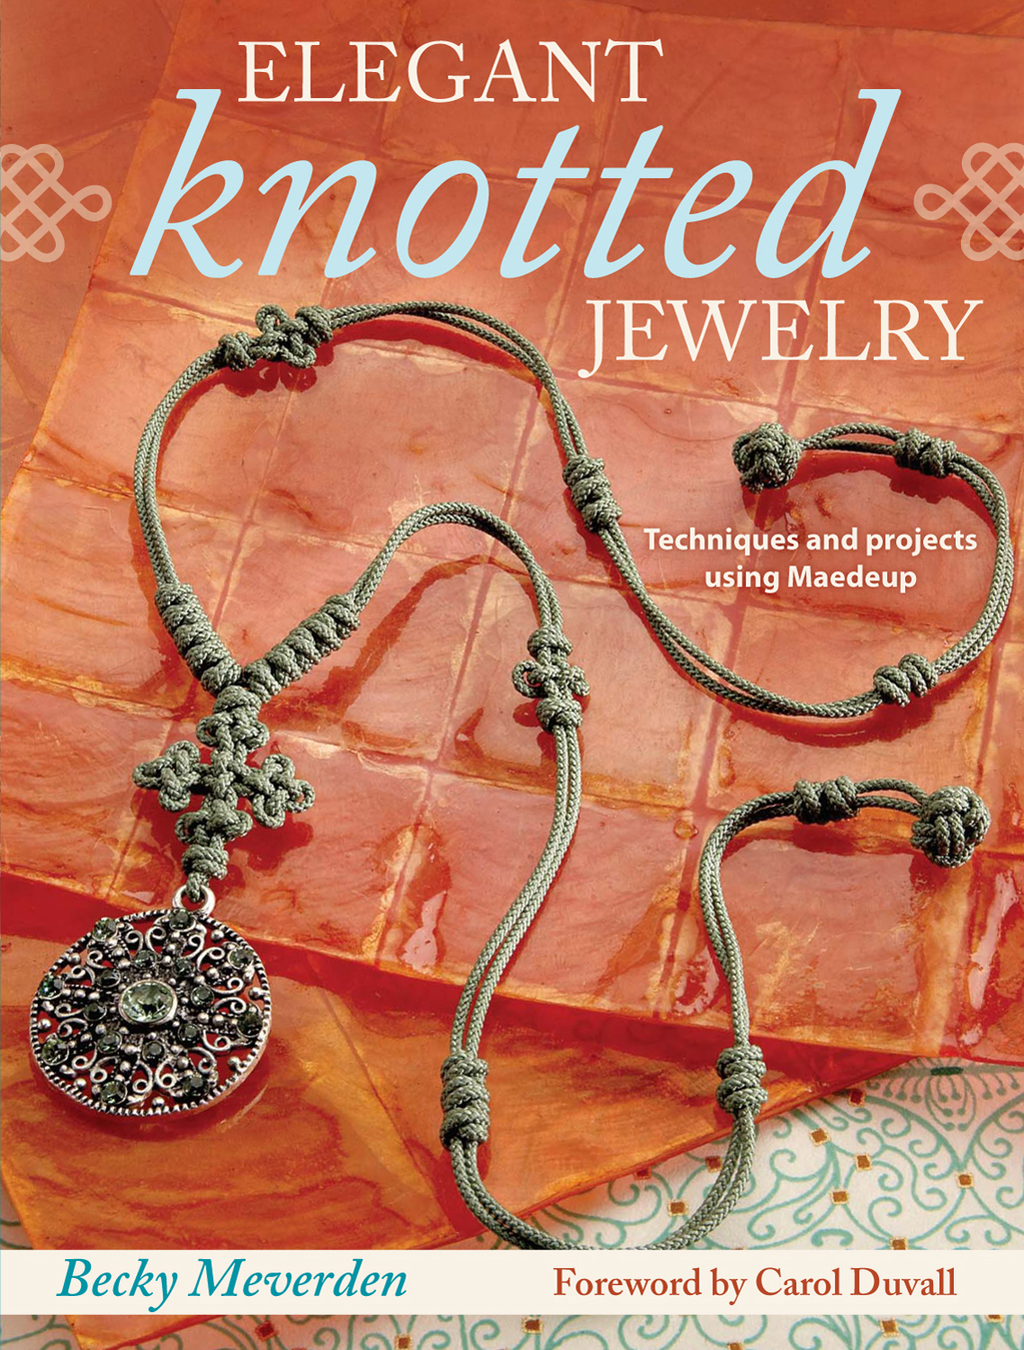 Elegant Knotted Jewelry Techniques and Projects Using Maedeup